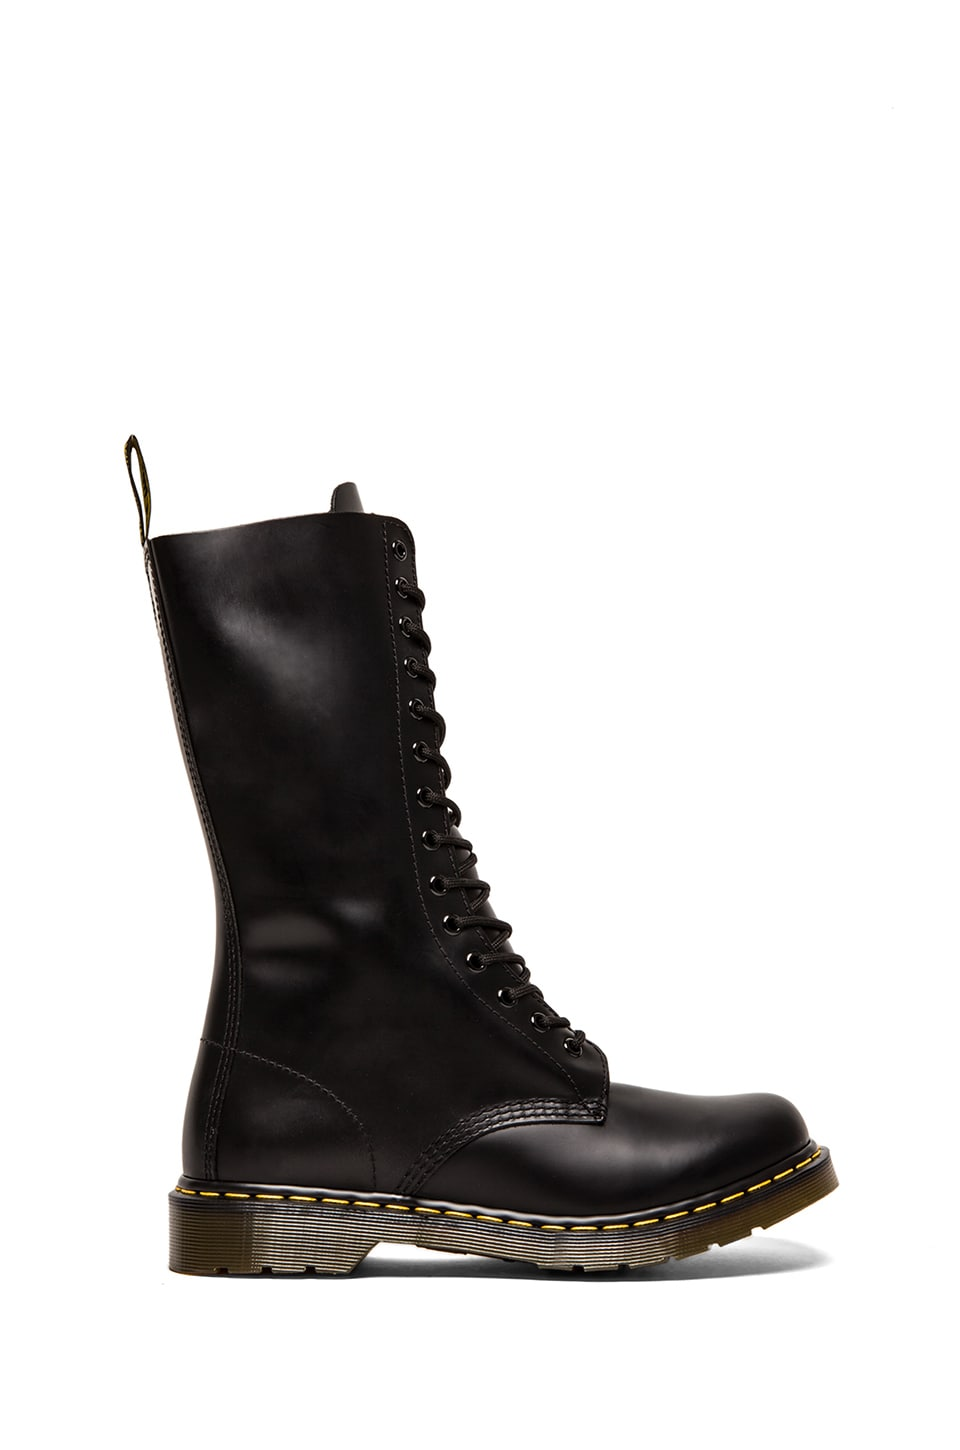 Dr. Martens Iconic 14 Eye Boot in Black